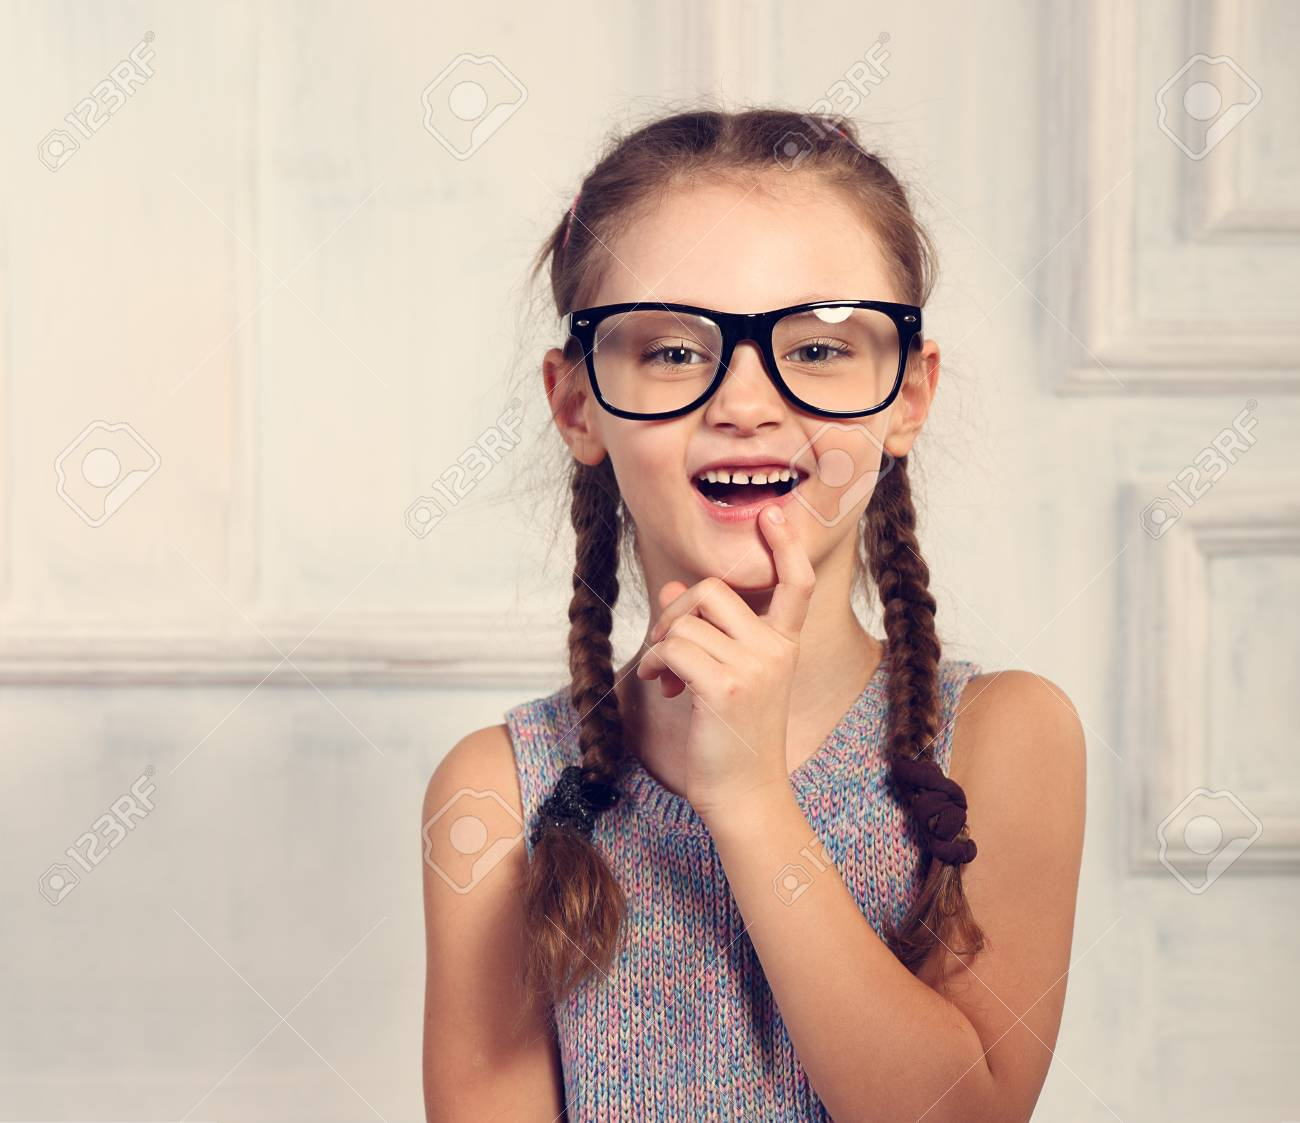 a1f30976eb Excited positive thinking kid girl in fashion glasses with emotional  natural smiling face looking on studio